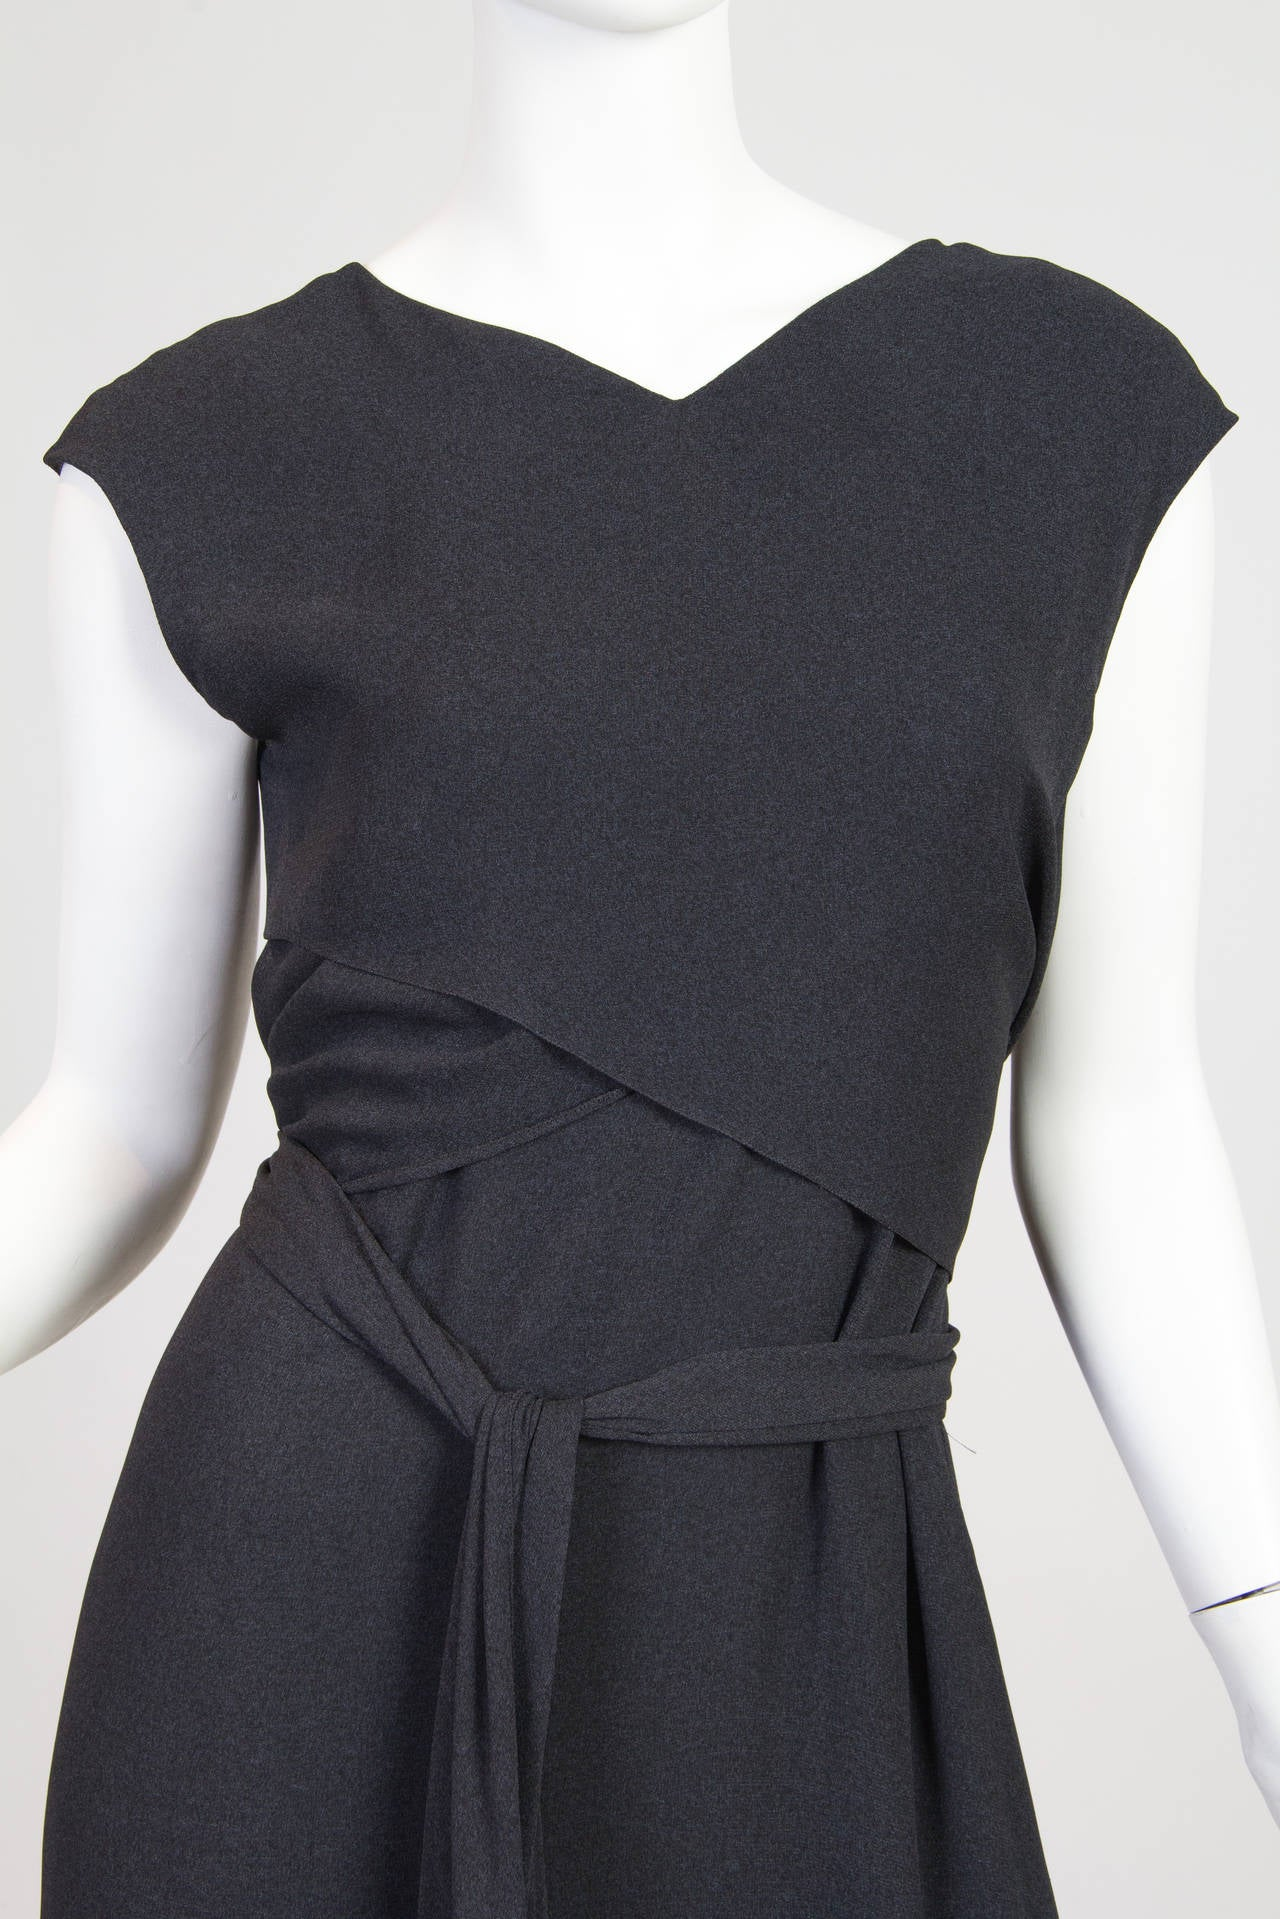 Slate Grey Crepe Dress from Chanel 6